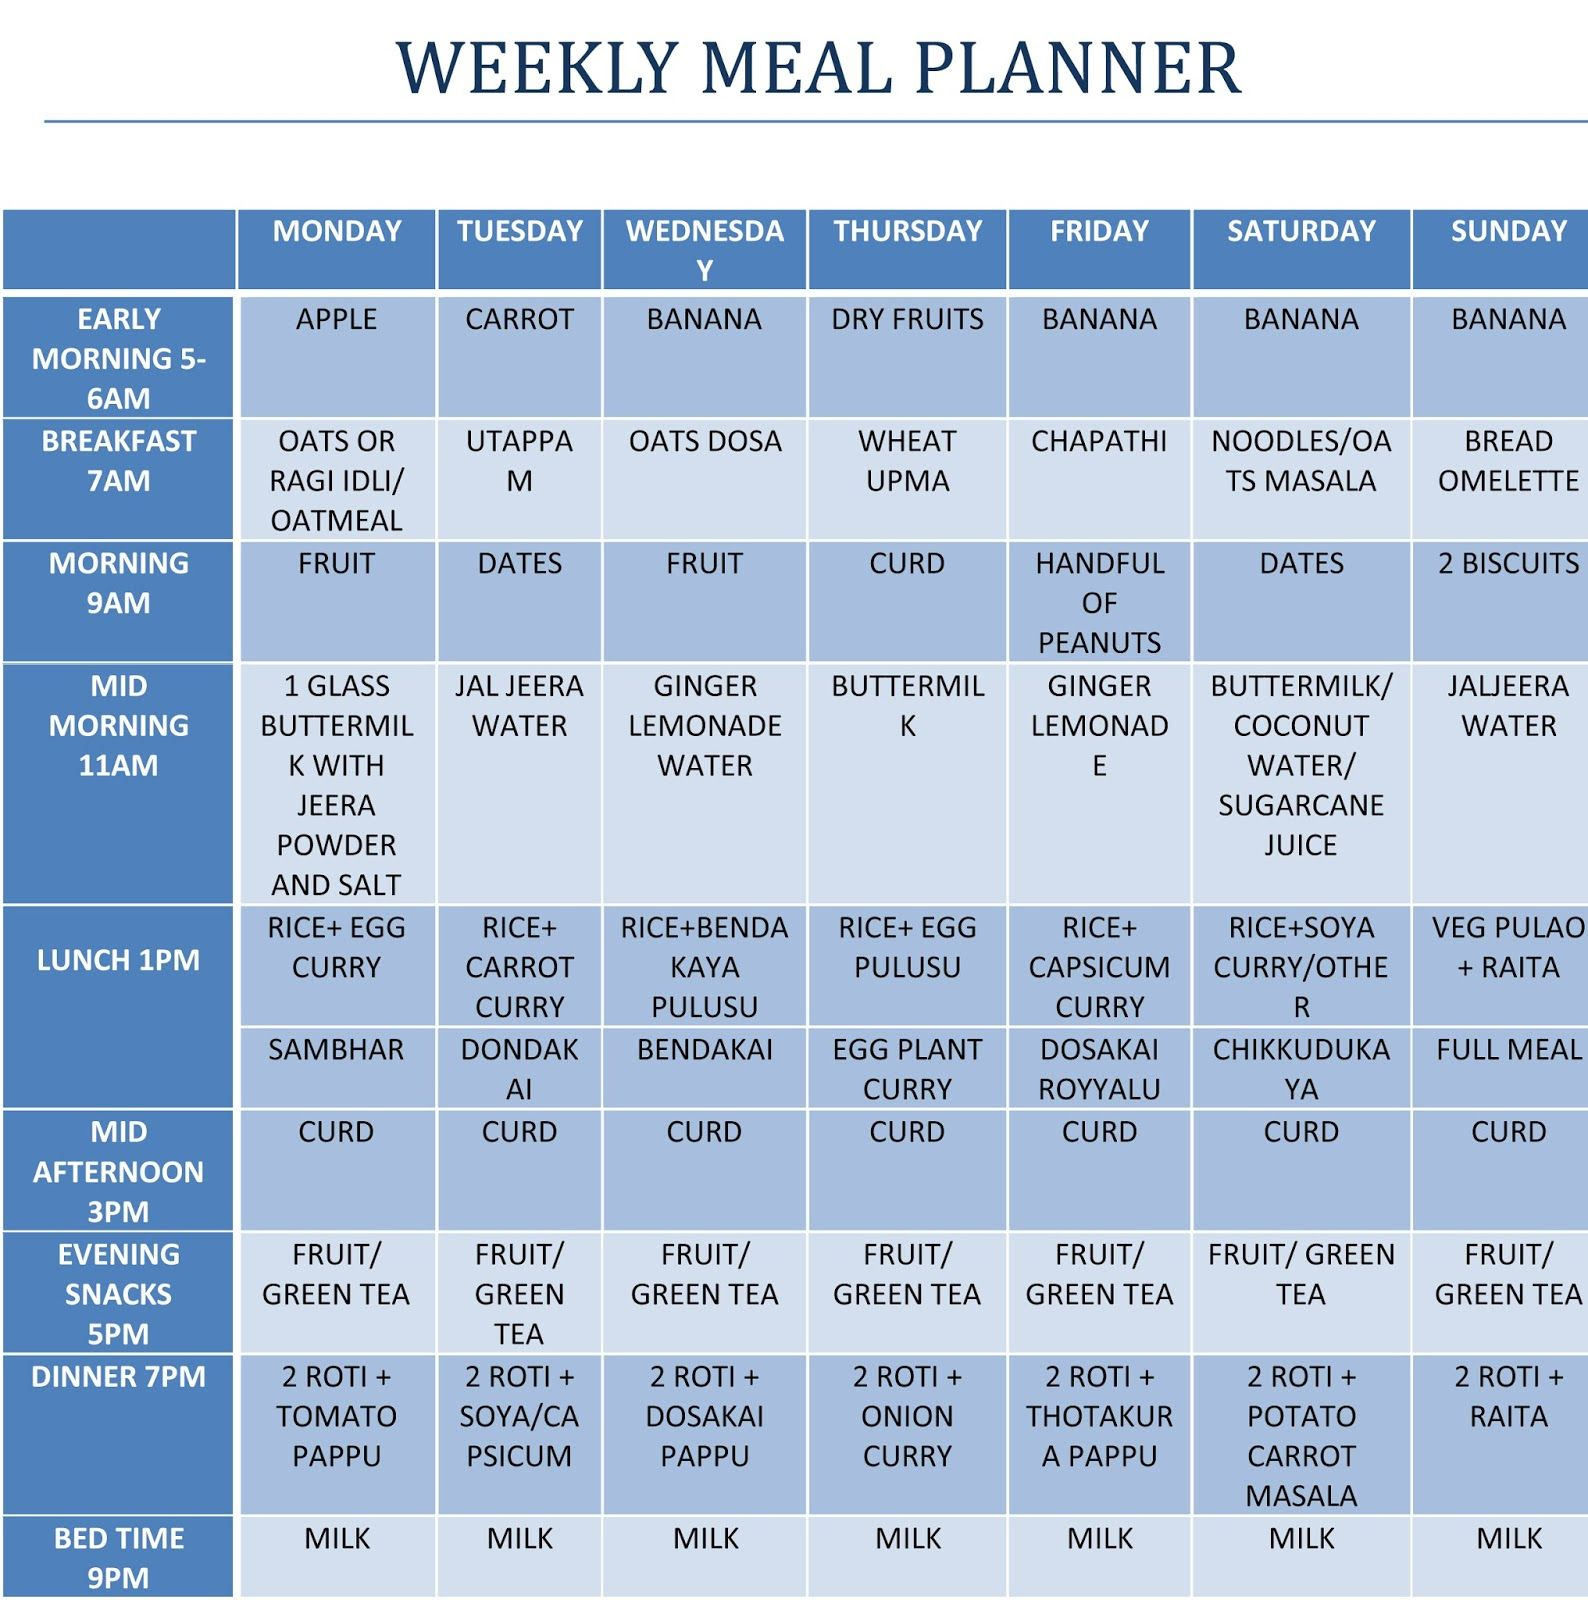 DIET CHART FOR WEIGHT LOSS DOWNLOAD